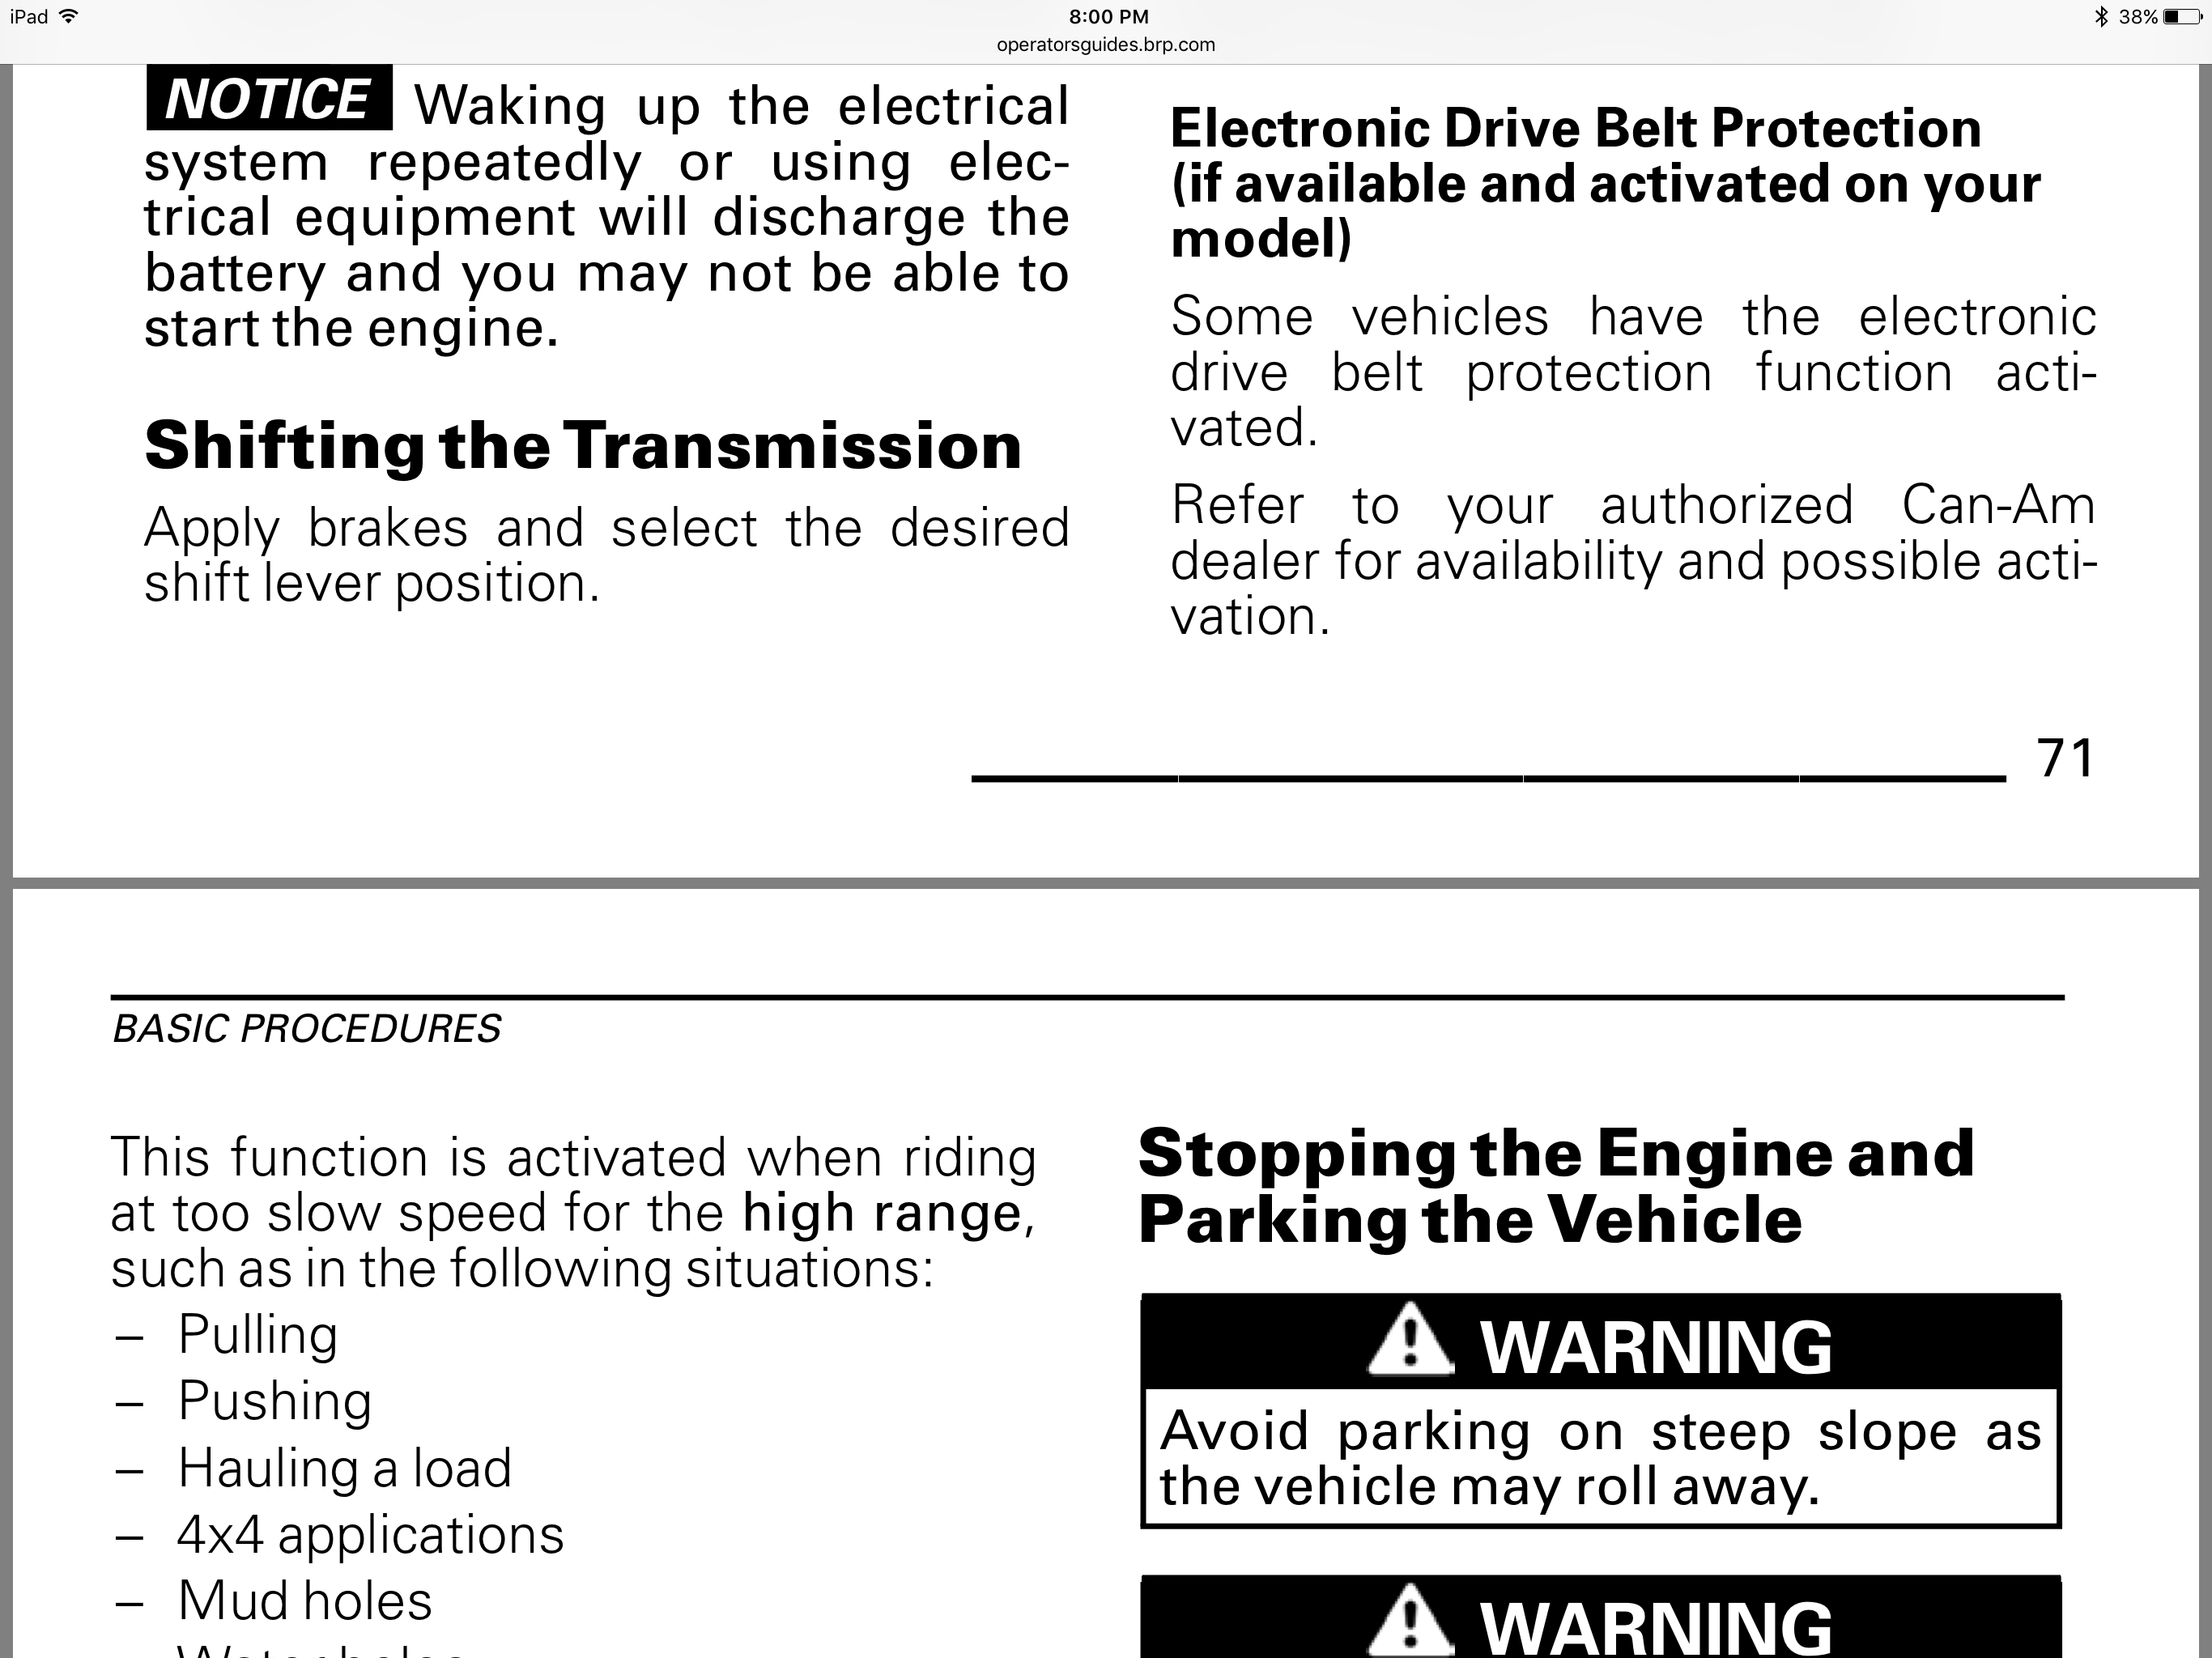 X3 Owners Manual now online